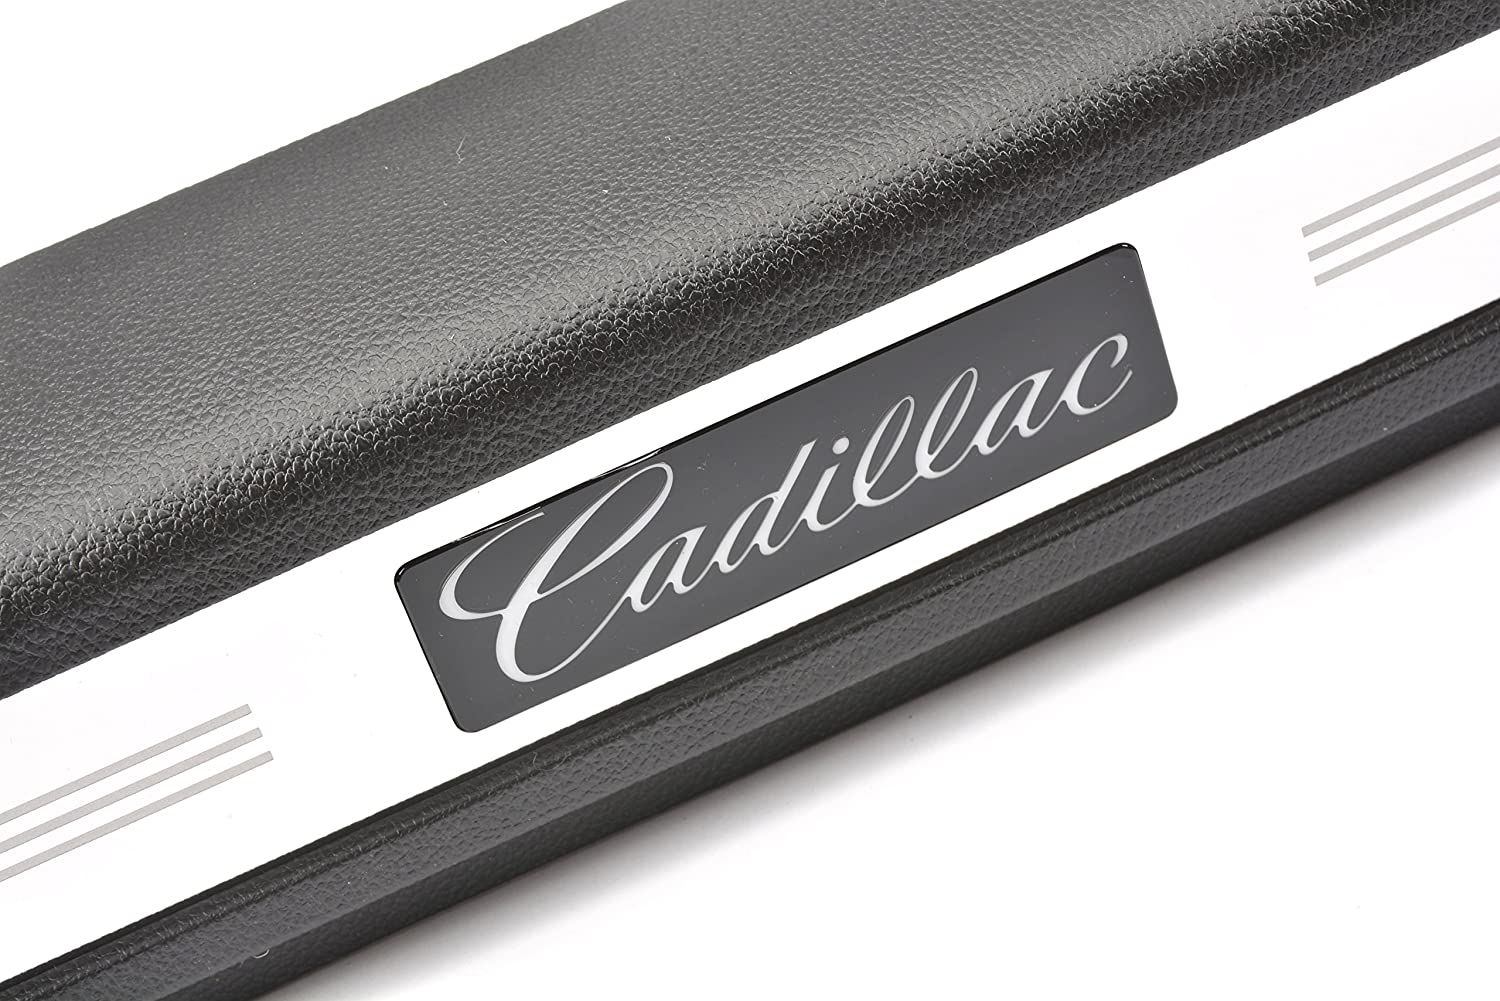 GM Accessories 19172905 Illuminated Front Door Sill Plates in Ebony with Cadillac Script